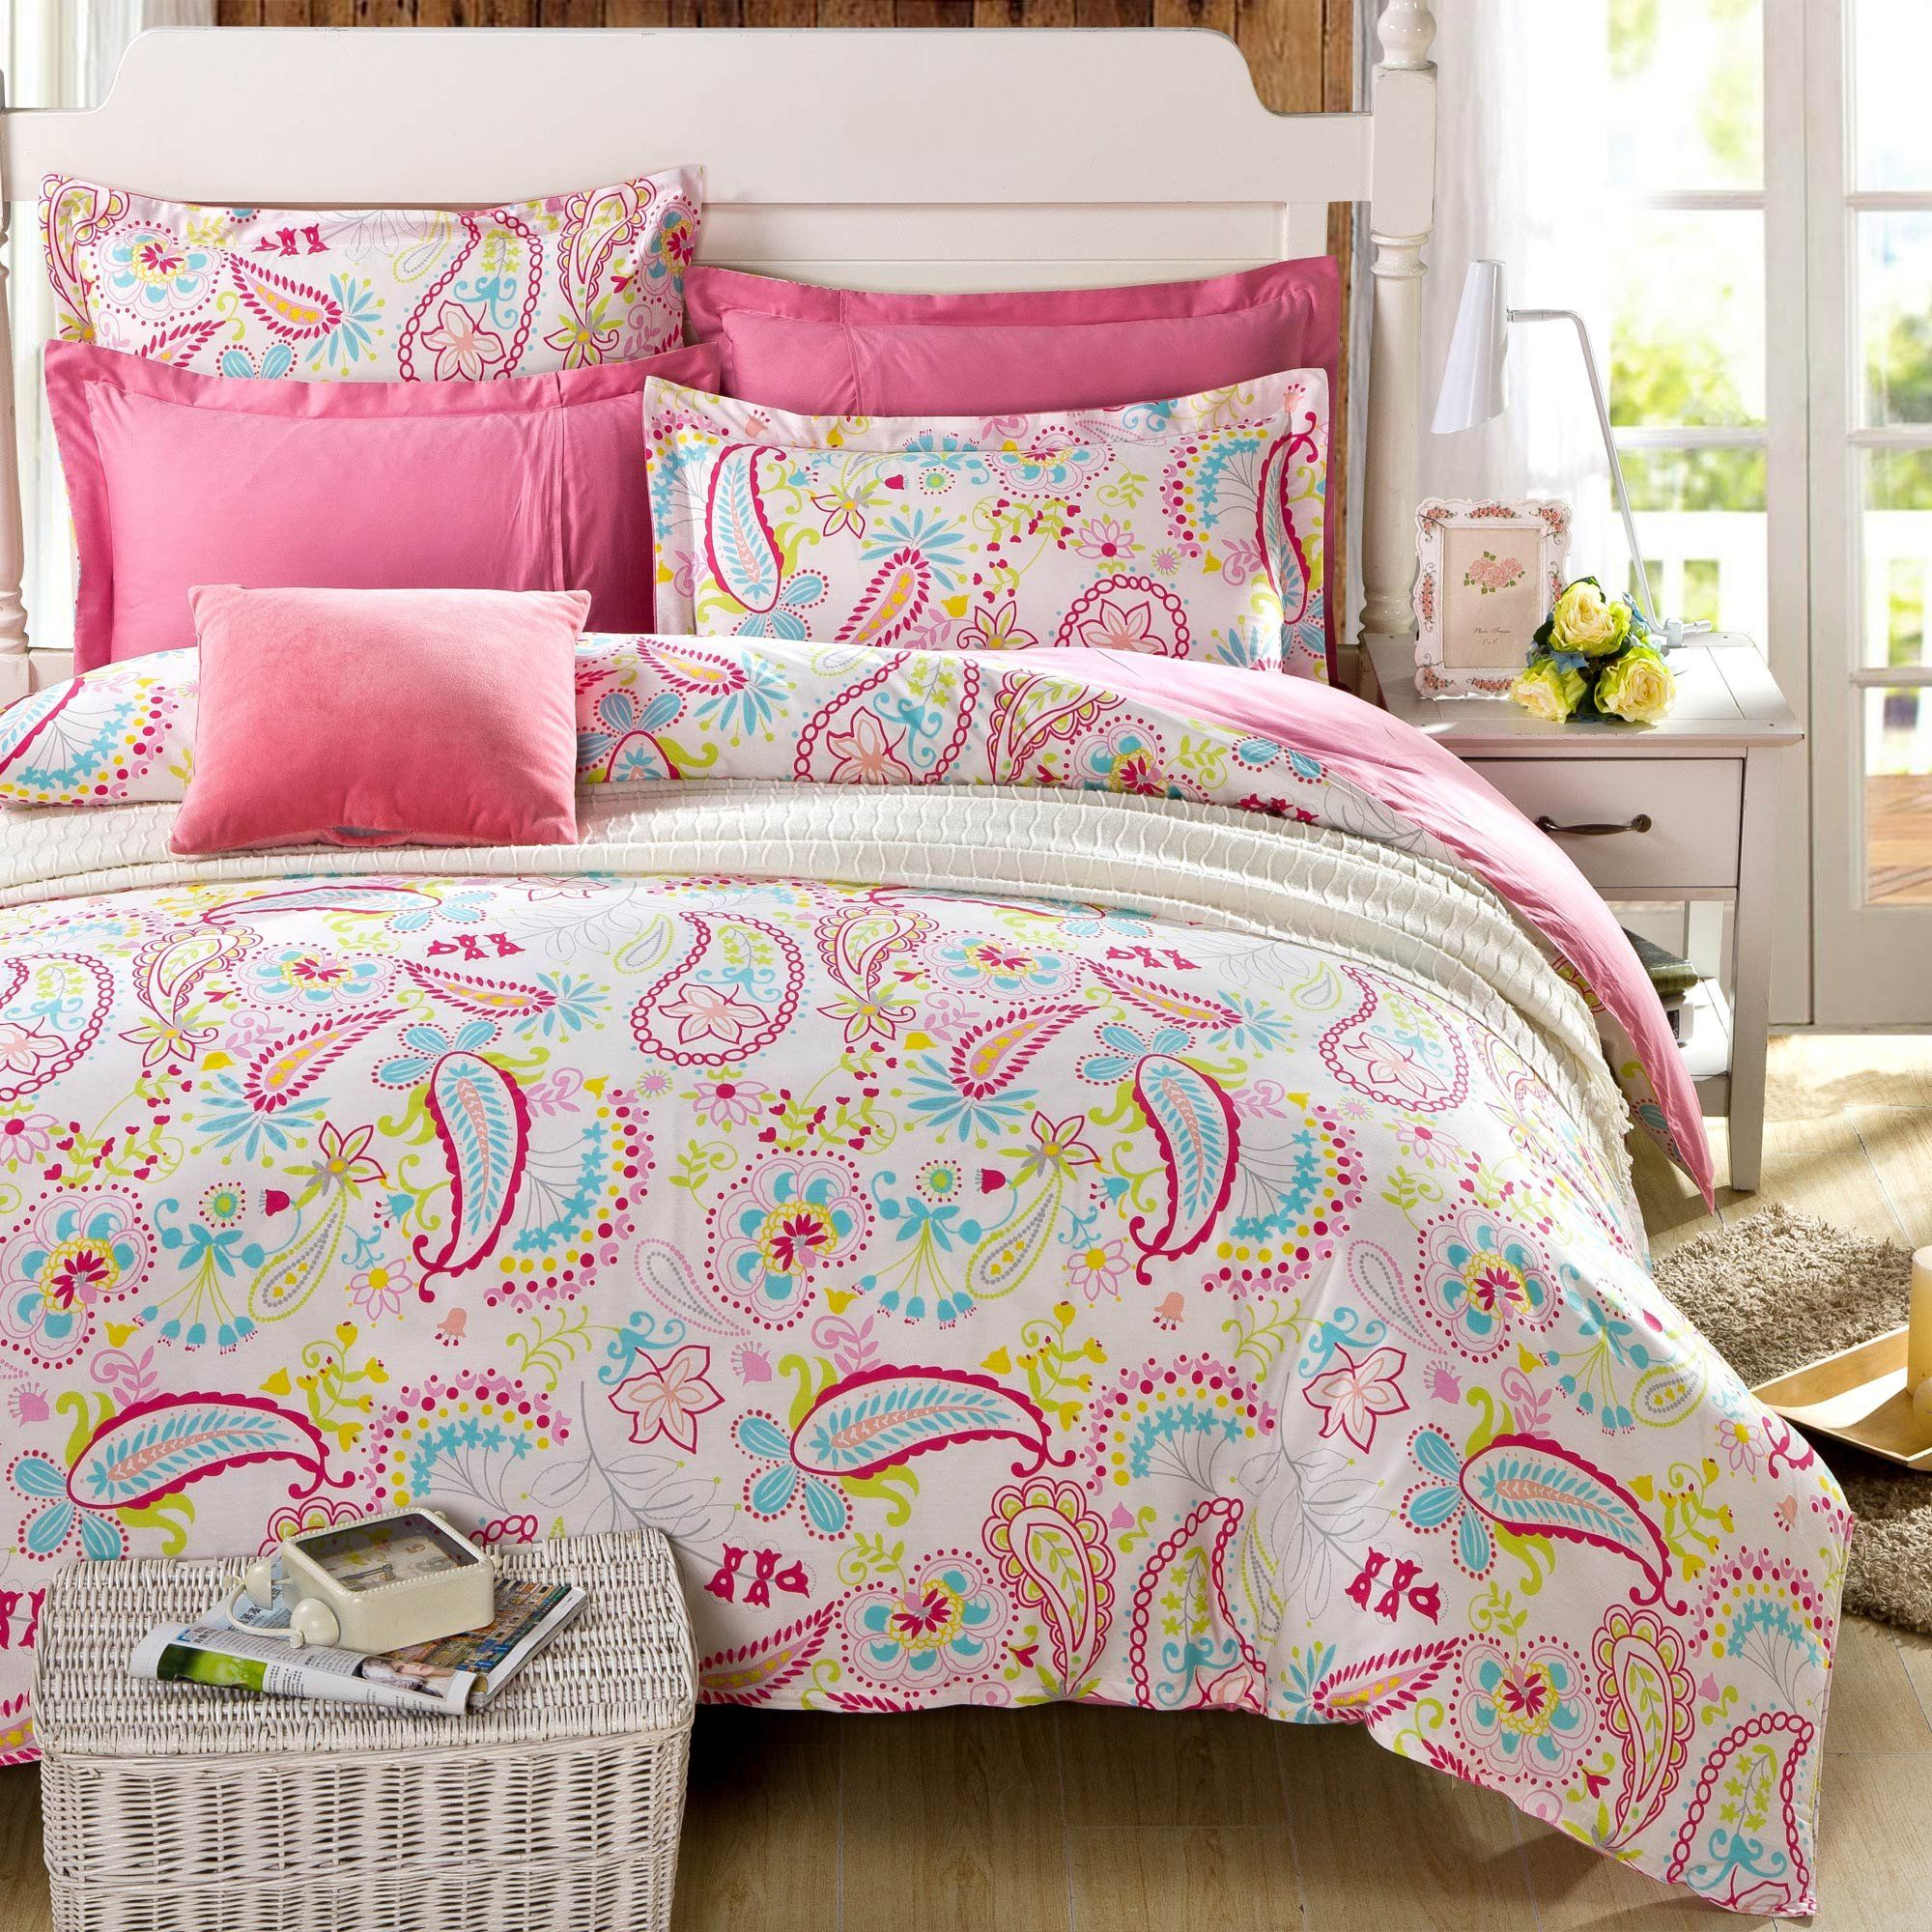 of bed blankets full spreads modern kids bedding and girls boy size duvet for teen teenage sets girly cover funky teens twin comforter covers beds beautiful queen